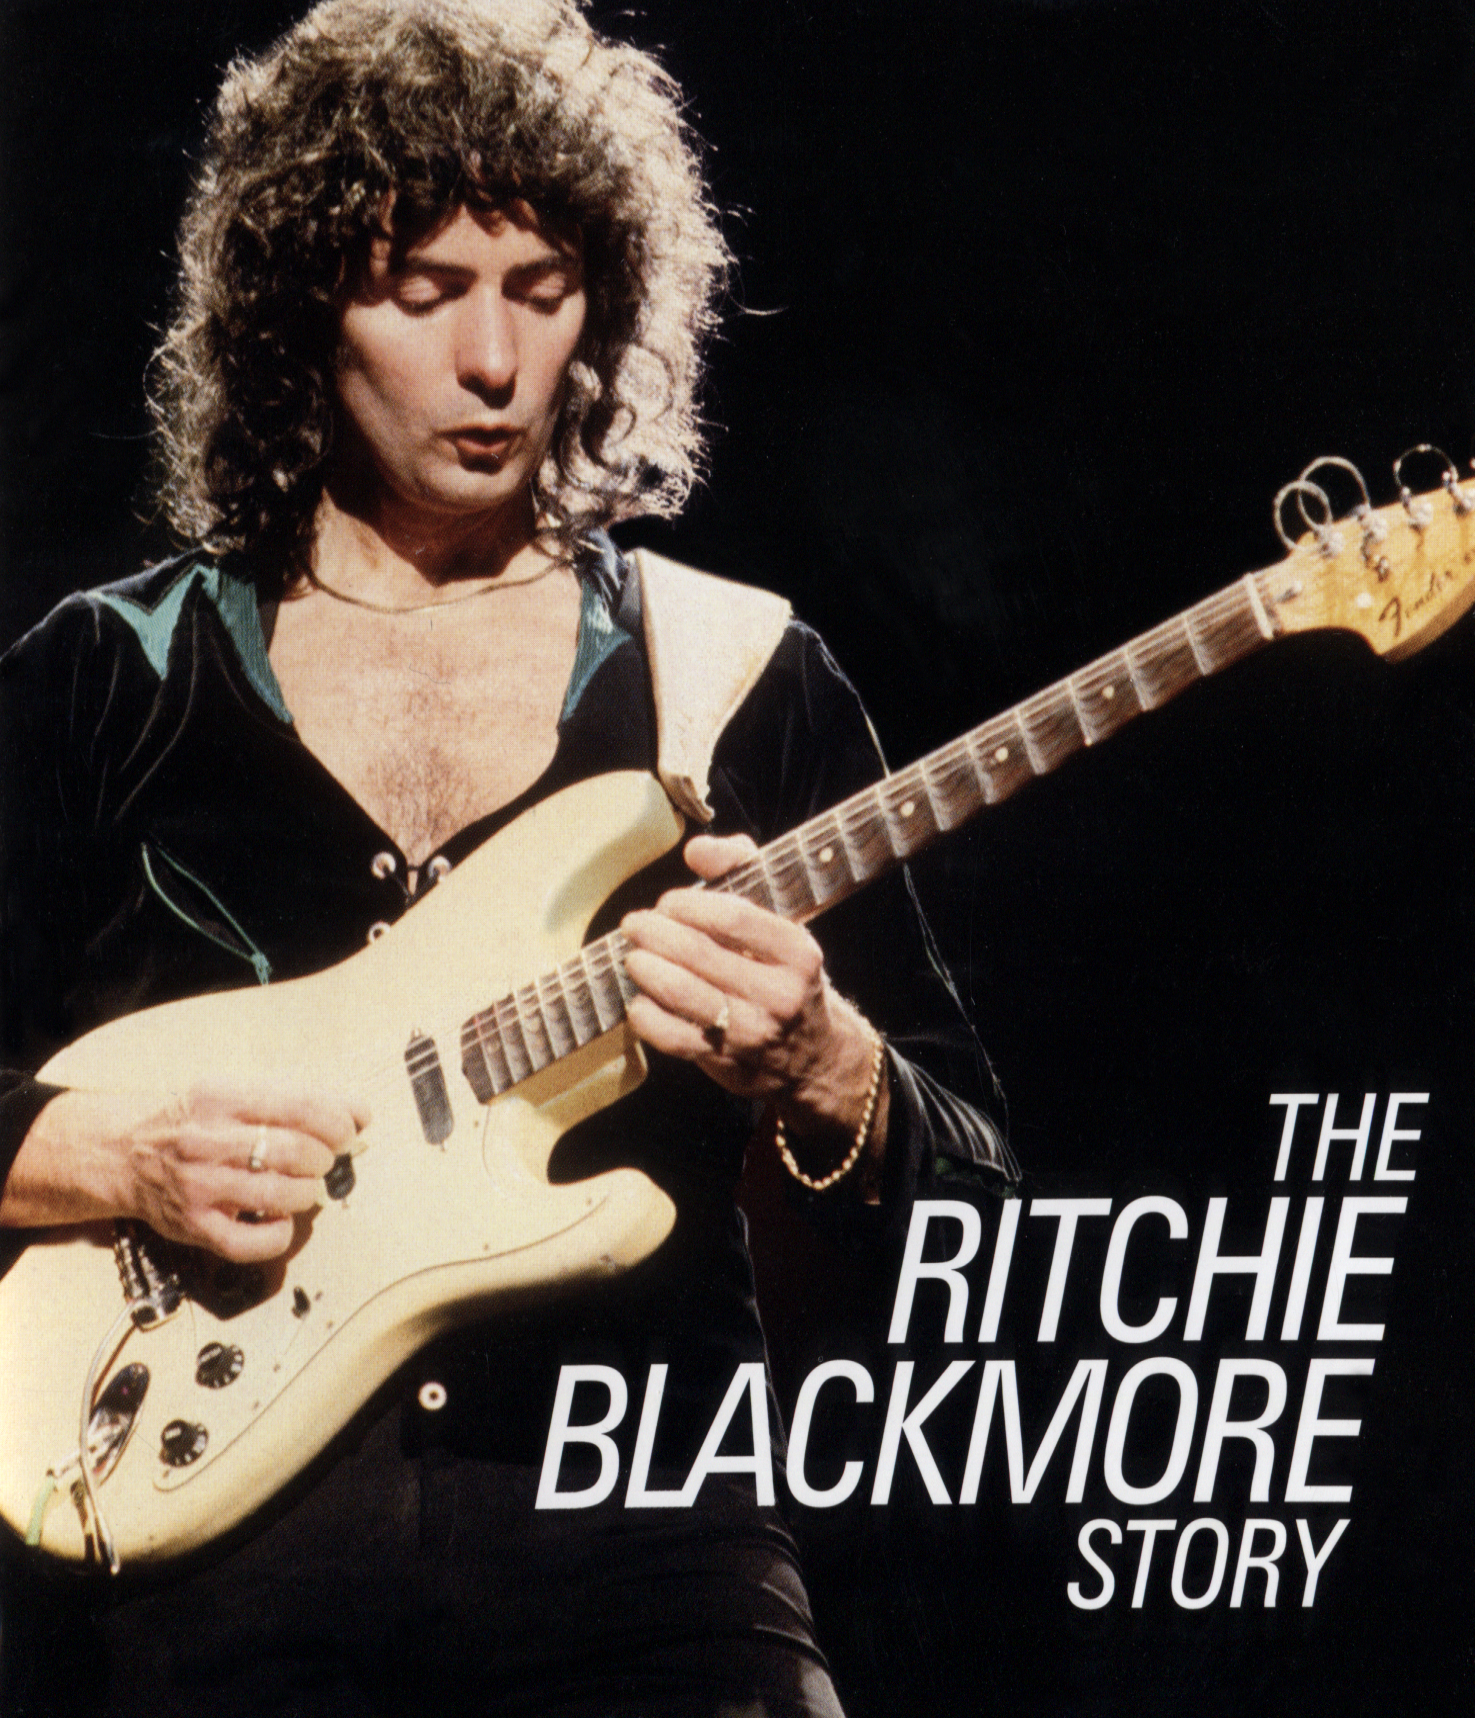 Ritchie Blackmore: The Ritchie Blackmore Story